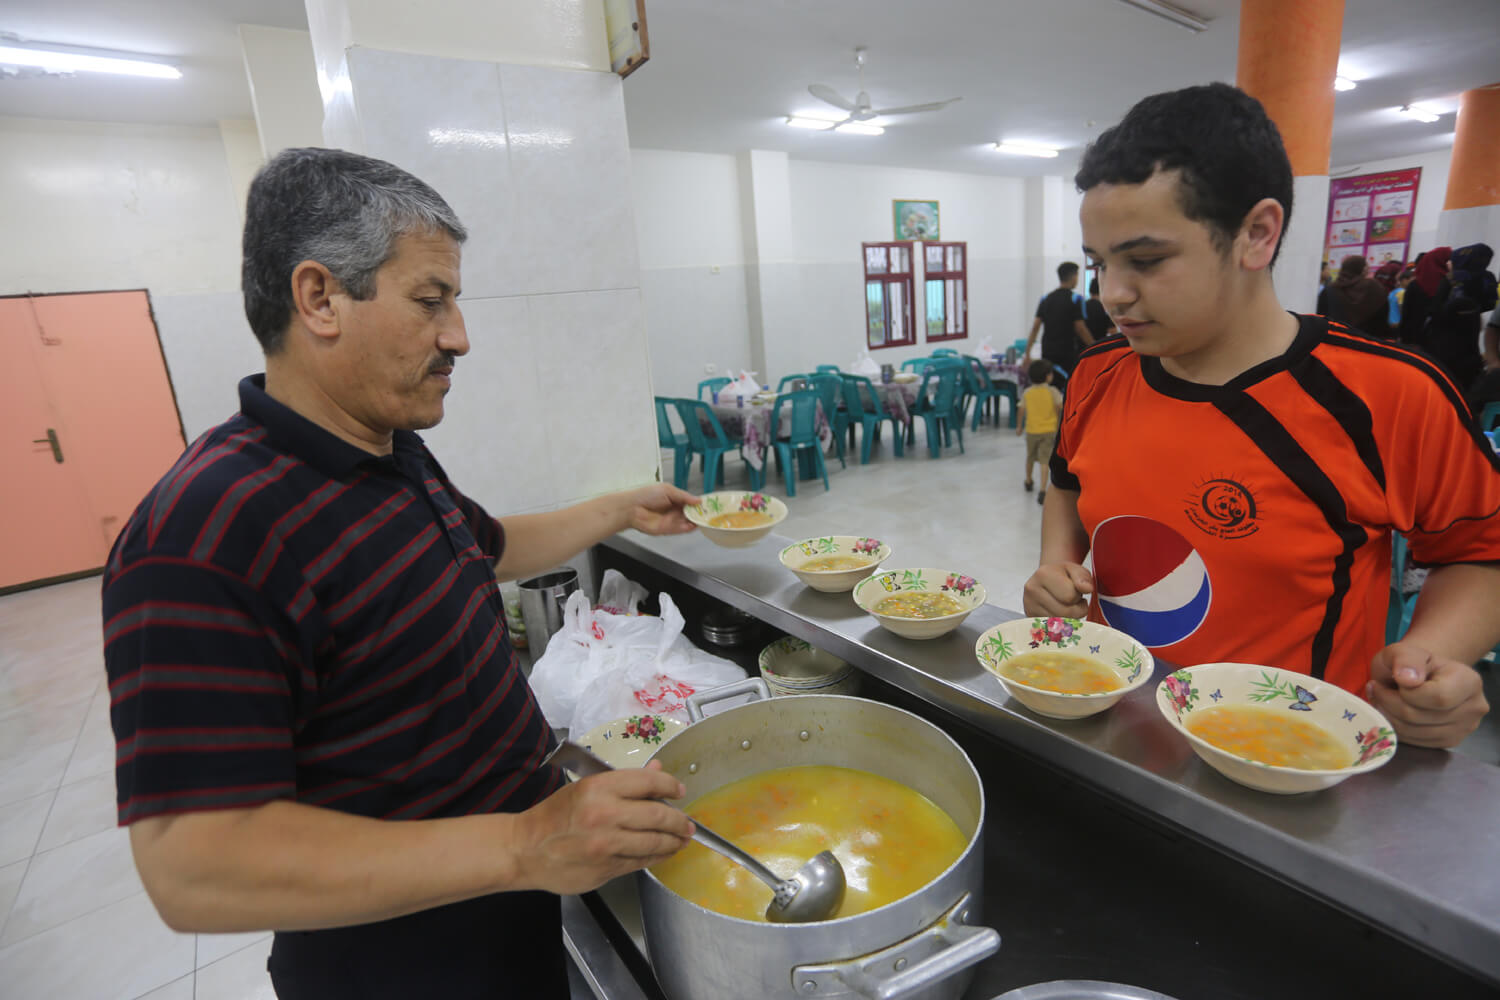 Ahmad Harb, 13, receives a meal from the cook at the Al-Amal Institute for Orphans, June 26, 2016. (Photo: Mohammed Asad)